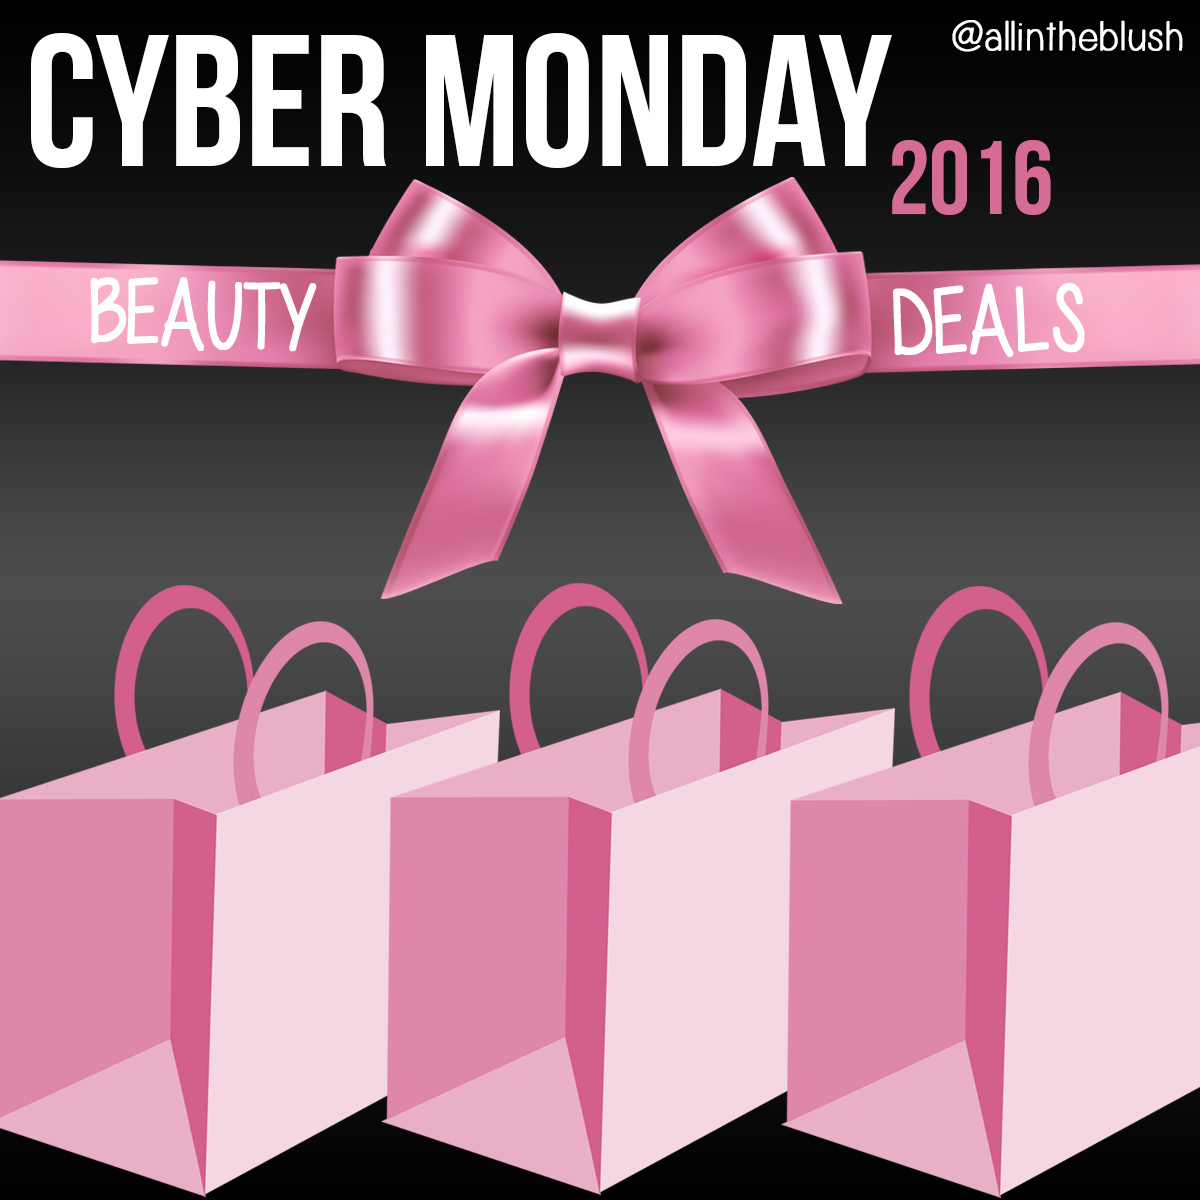 Cyber Monday Beauty Deals for 2016 - All In The Blush